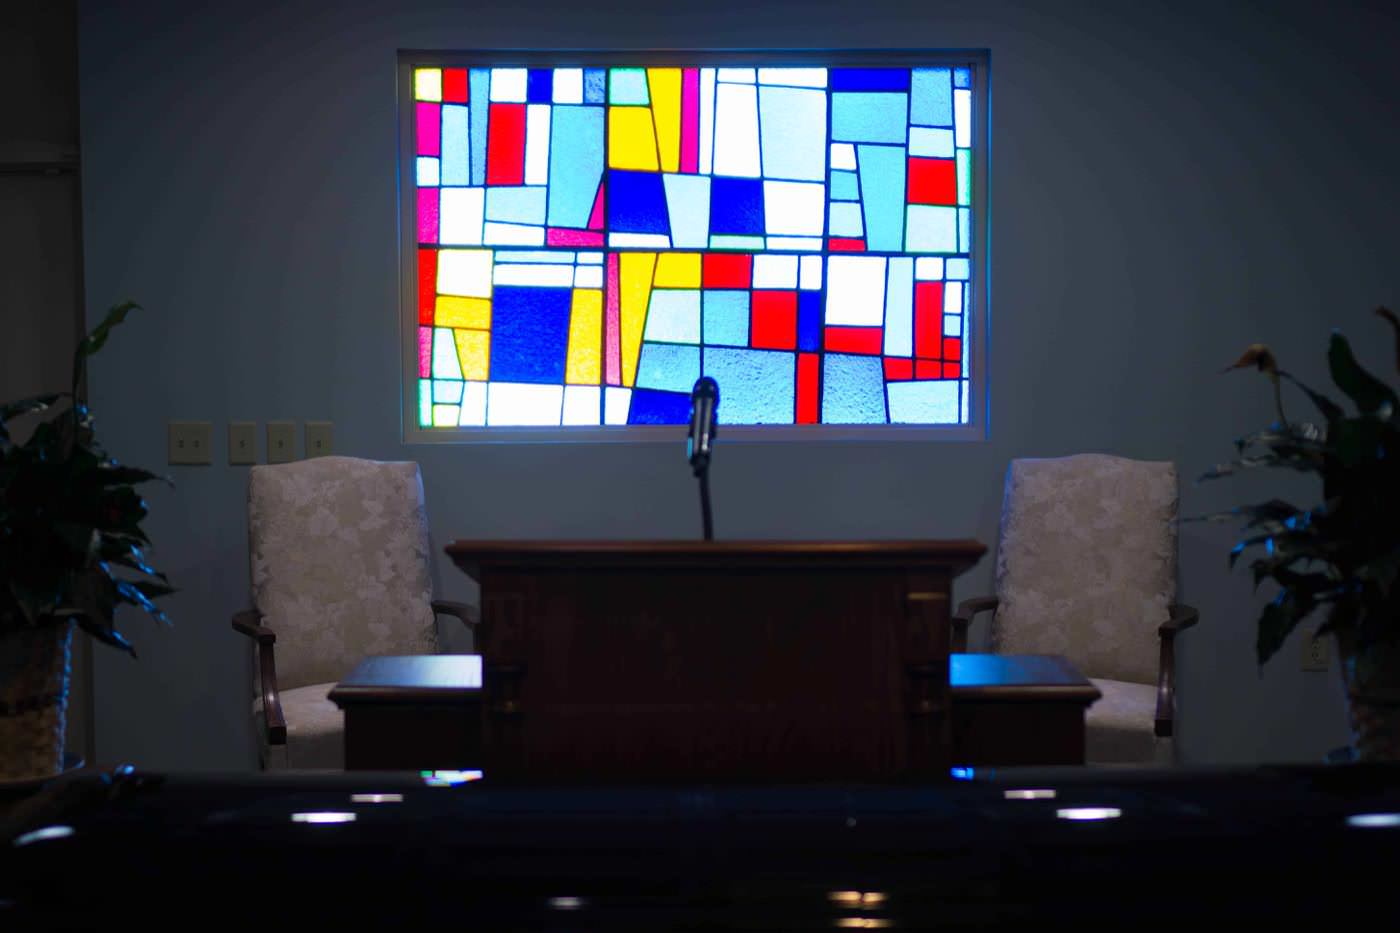 city of oaks stained glass traditional service funeral home chapel window casket